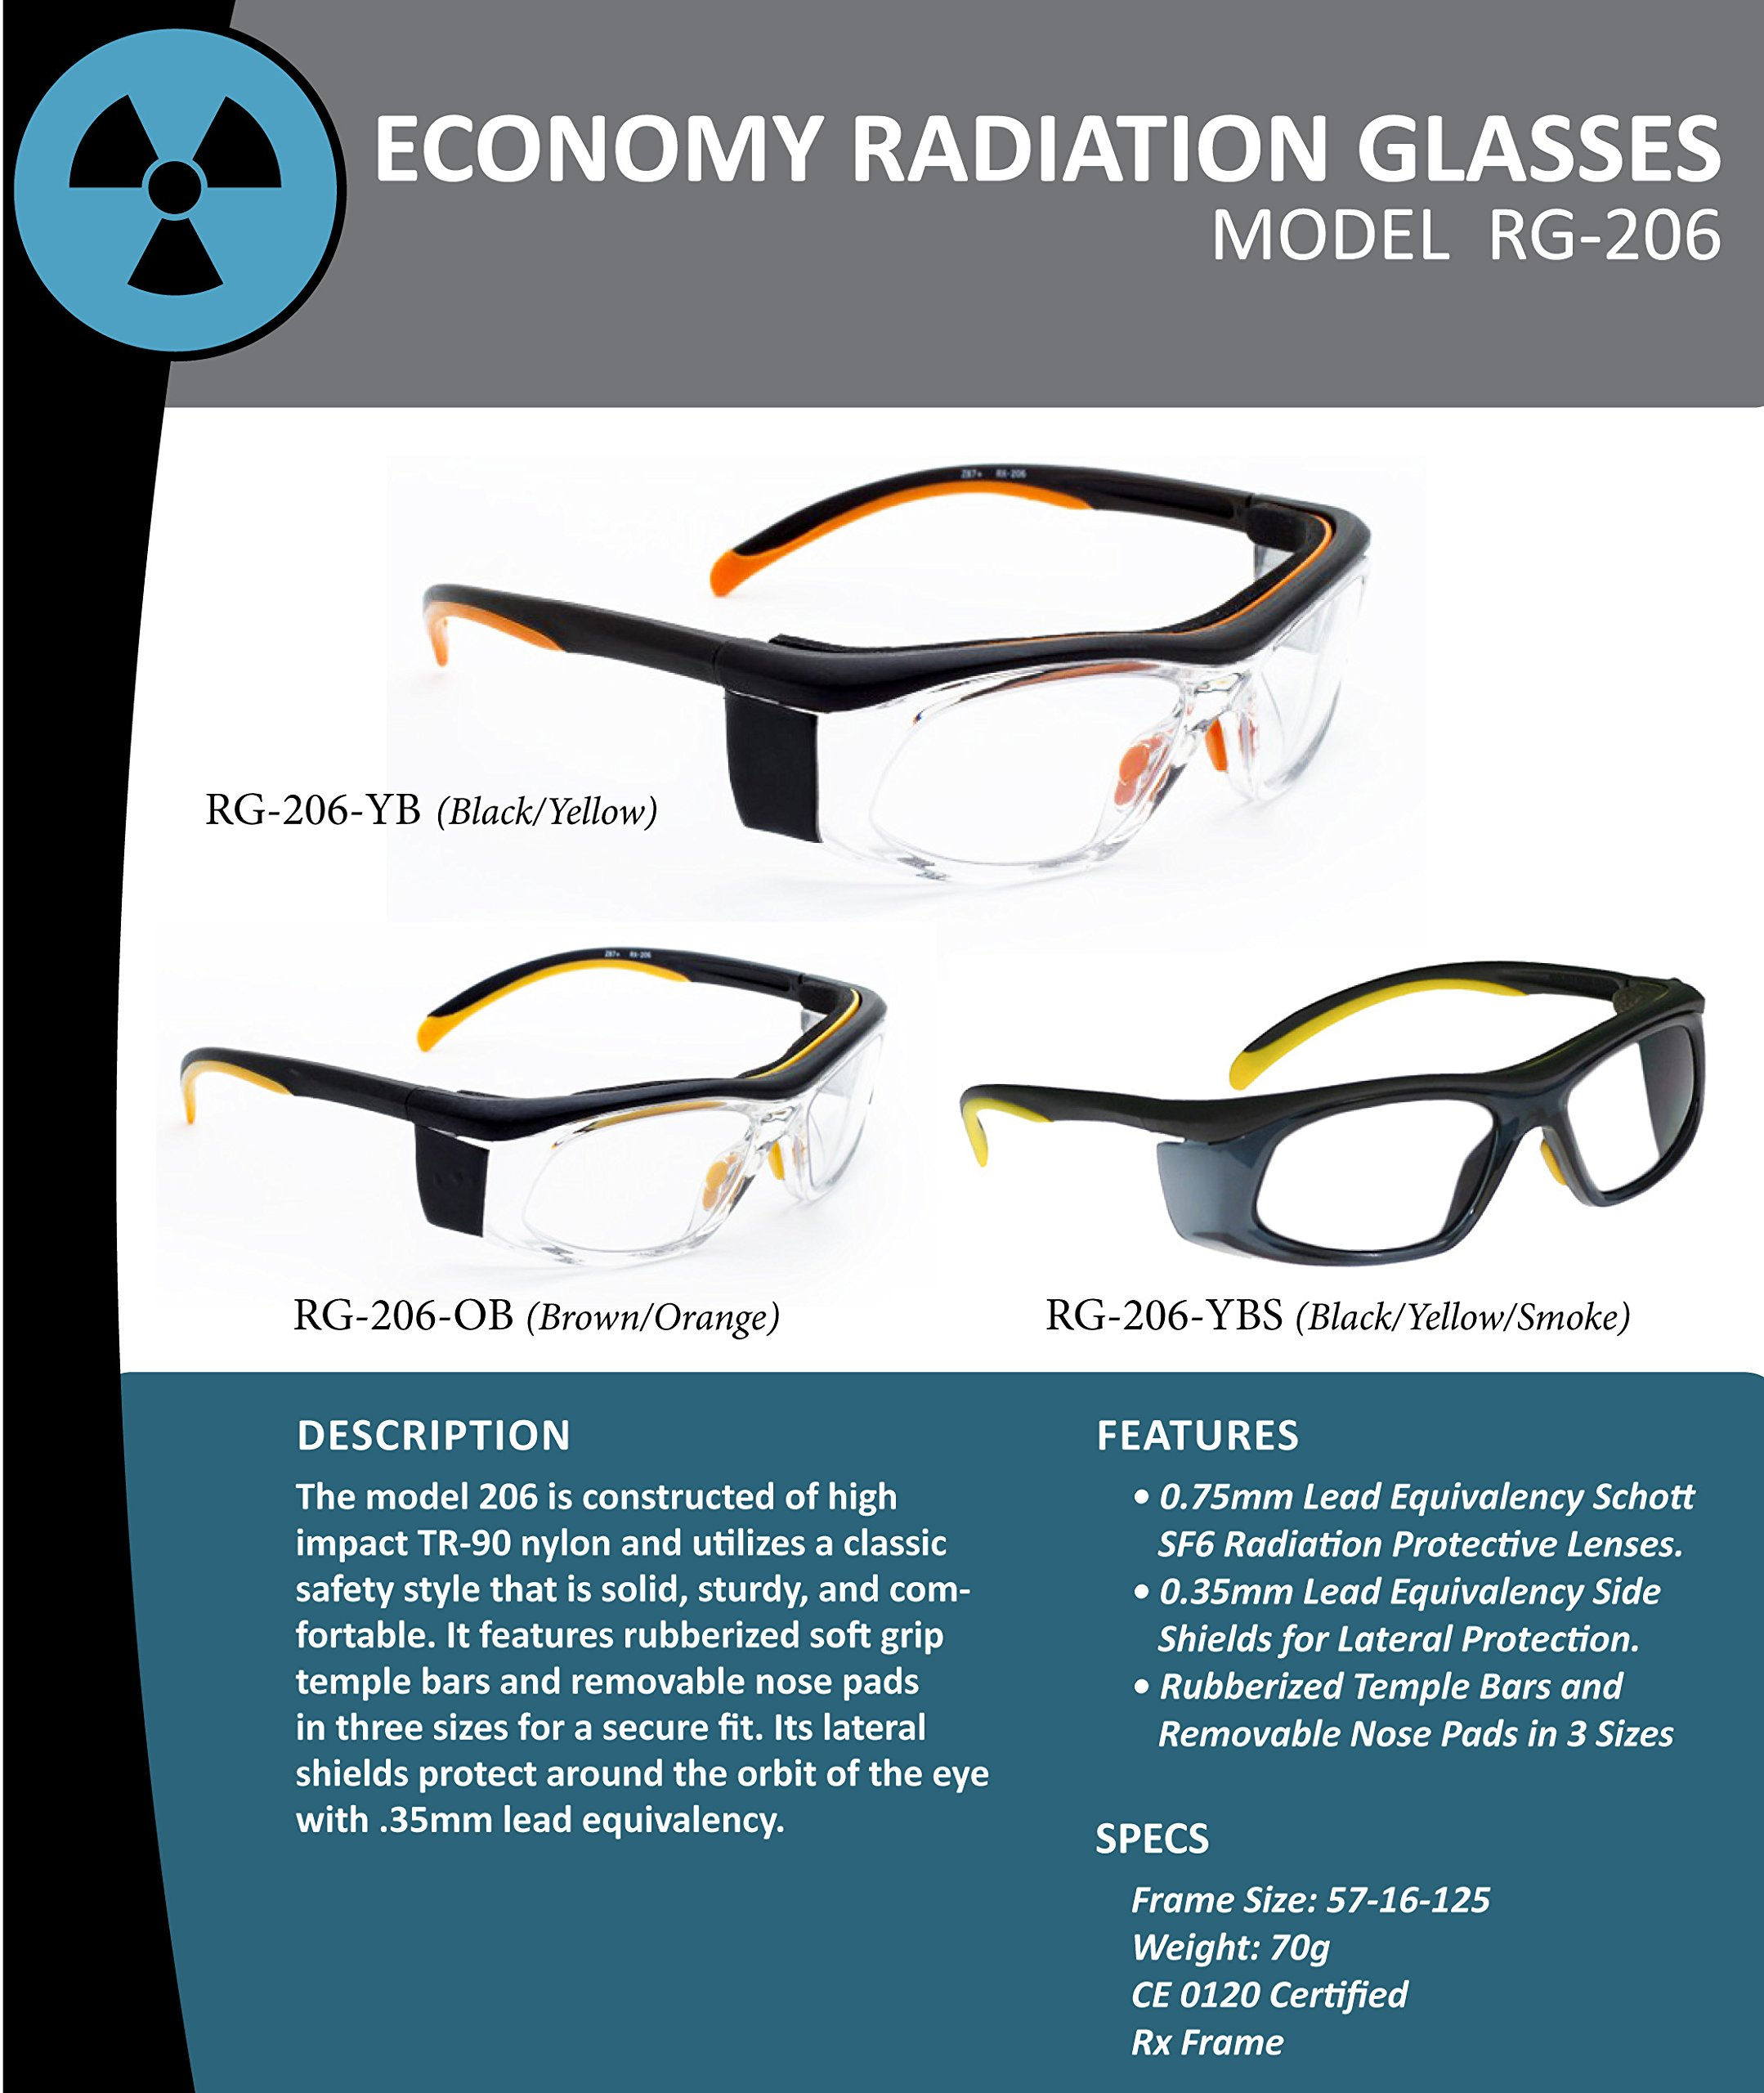 X-ray Radiation Protective Eyewear in Plastic Safety Frame - Orange/brown Color - Which Offers Excellent Protection, Large Viewing Area, Adjustable Temple Bar and Built-in Side Shields. by Schott SF-6 HT